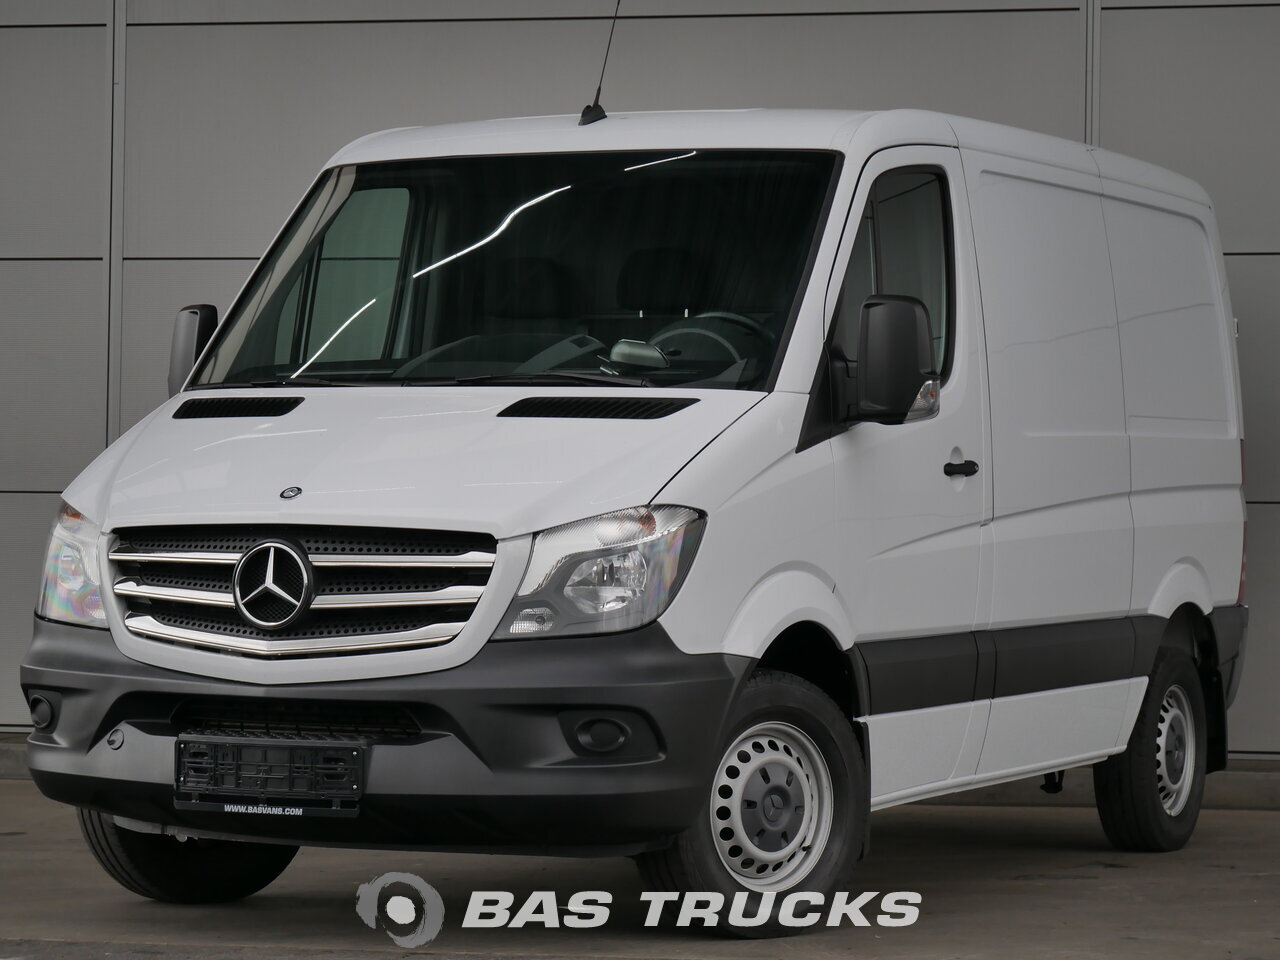 mercedes sprinter 213 cdi light commercial vehicle bas trucks. Black Bedroom Furniture Sets. Home Design Ideas